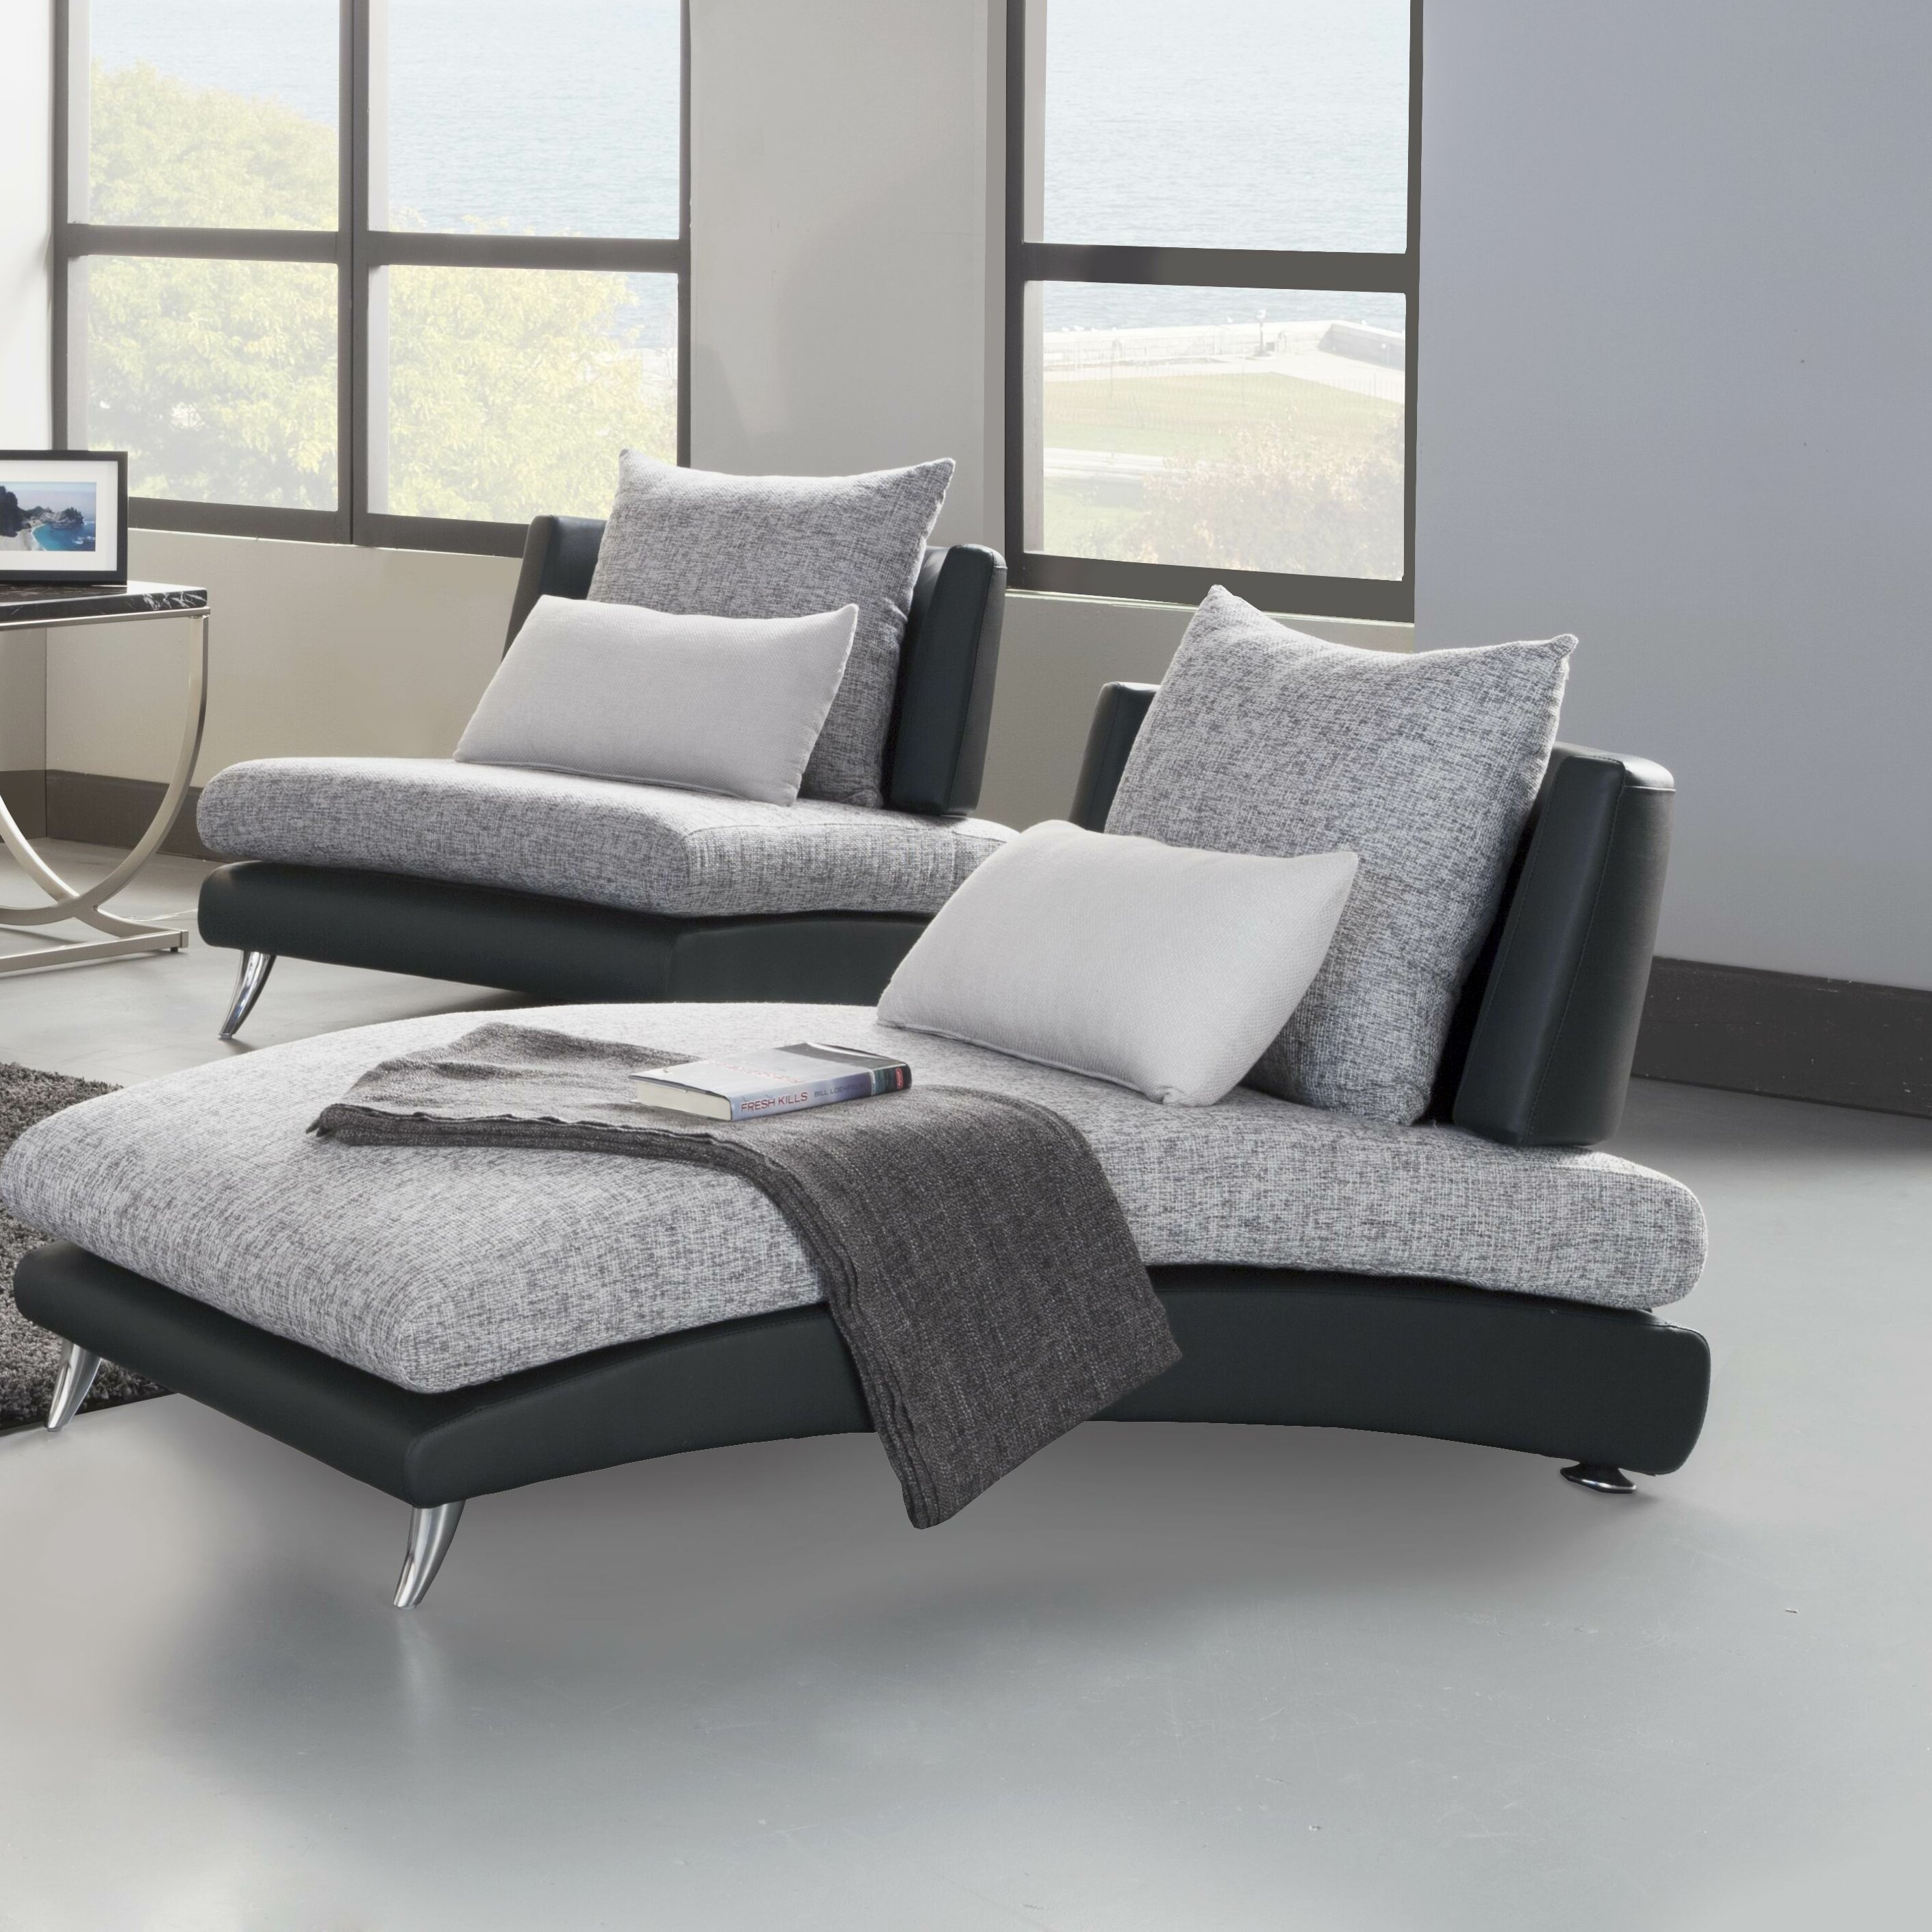 woodhaven hill renton living room collection reviews wayfair. Black Bedroom Furniture Sets. Home Design Ideas